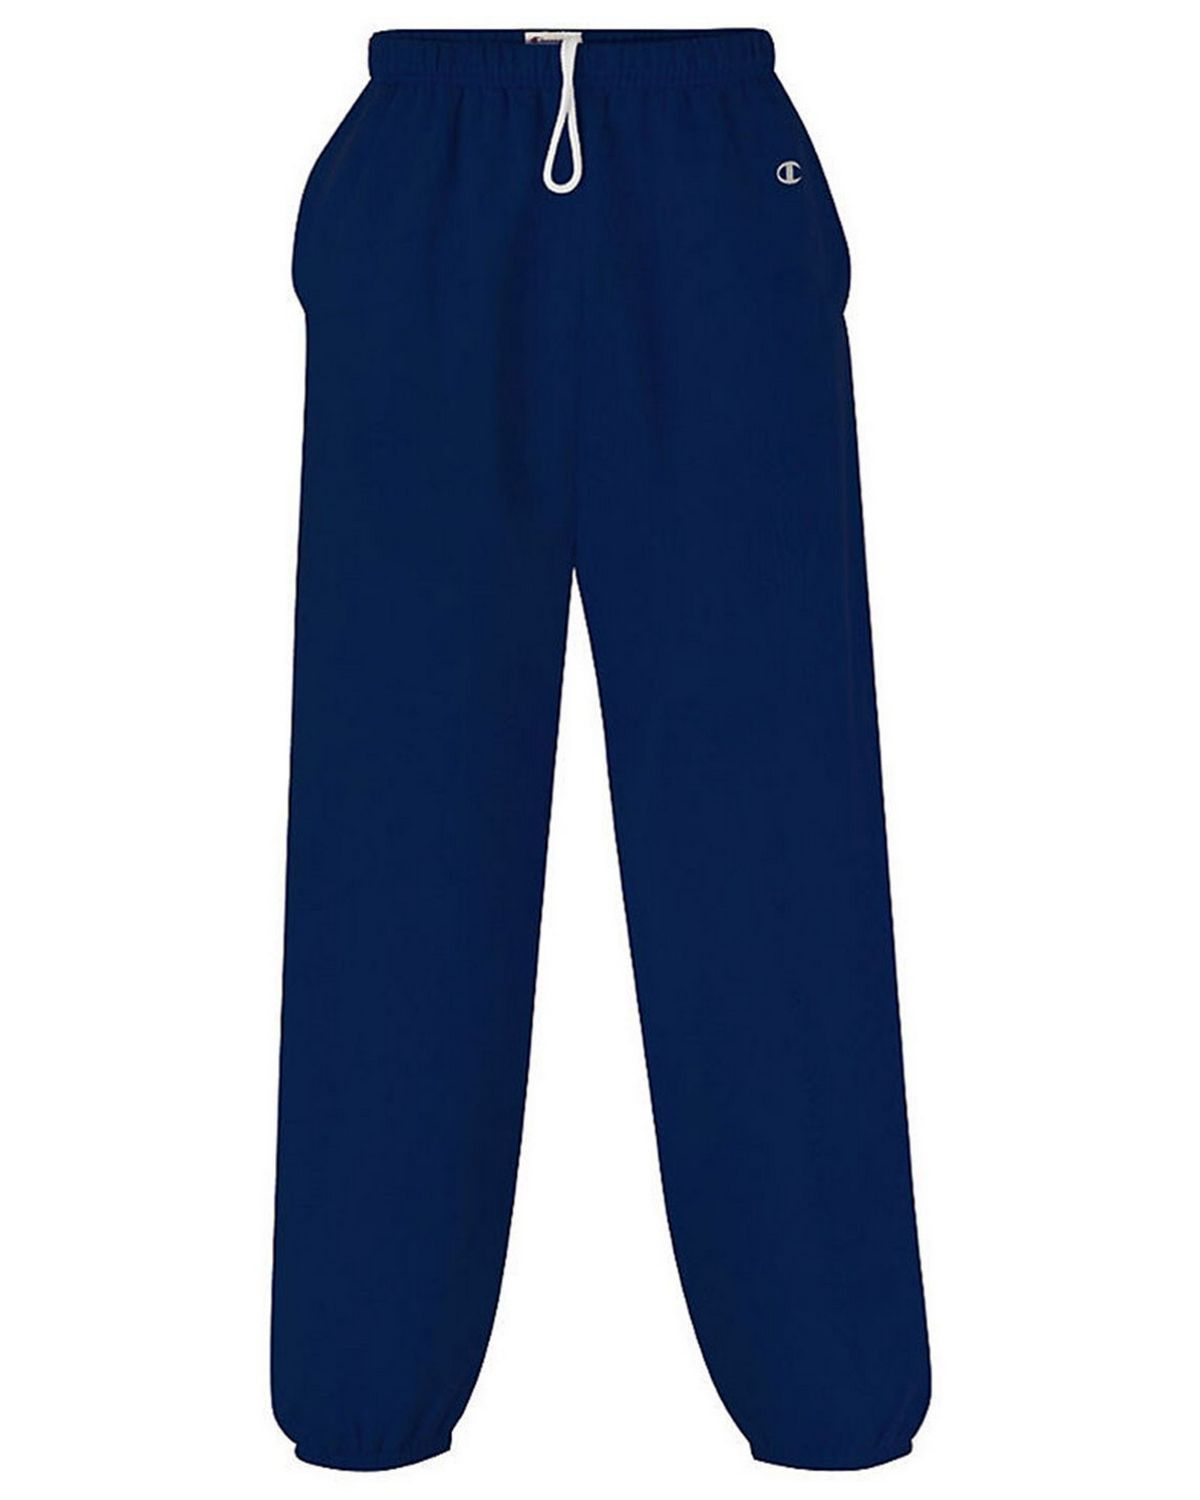 Champion P210 Cotton Max Fleece Pant - Team Navy - XS P210